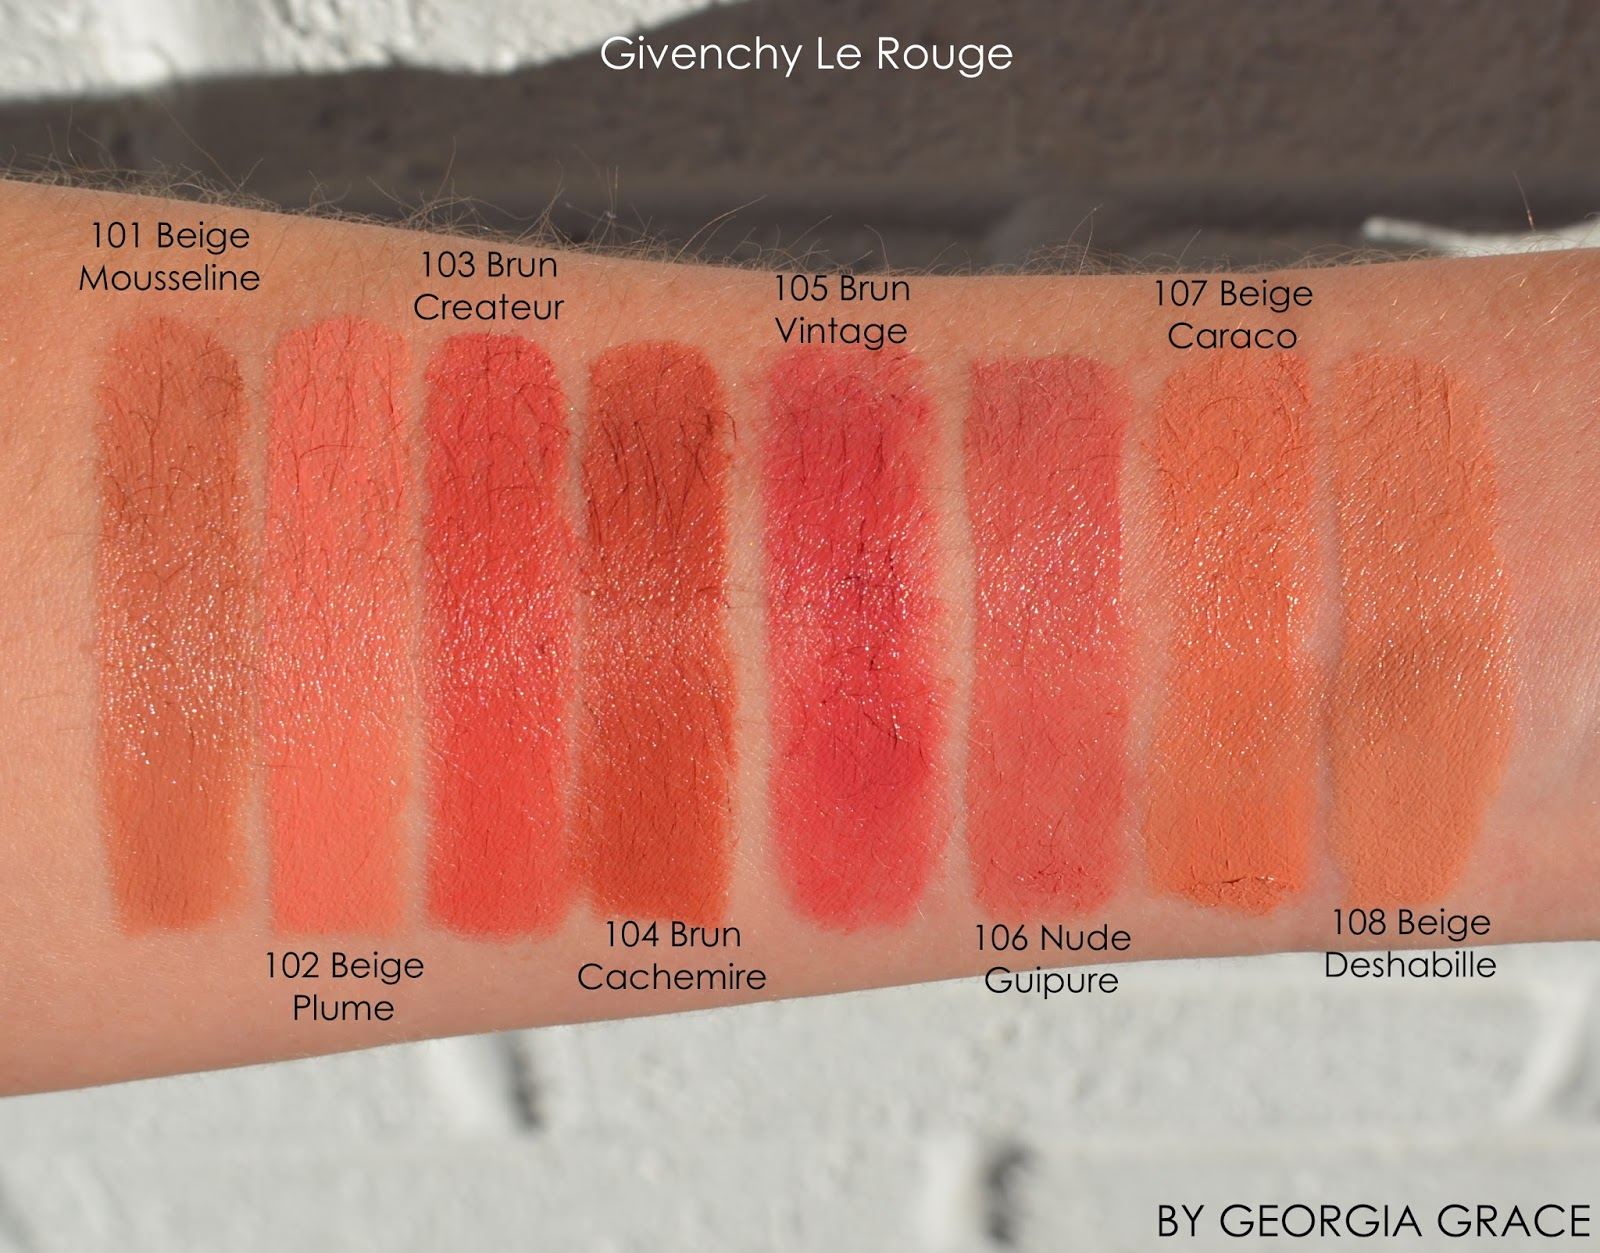 Givenchy Le Rouge Swatches of All Shades